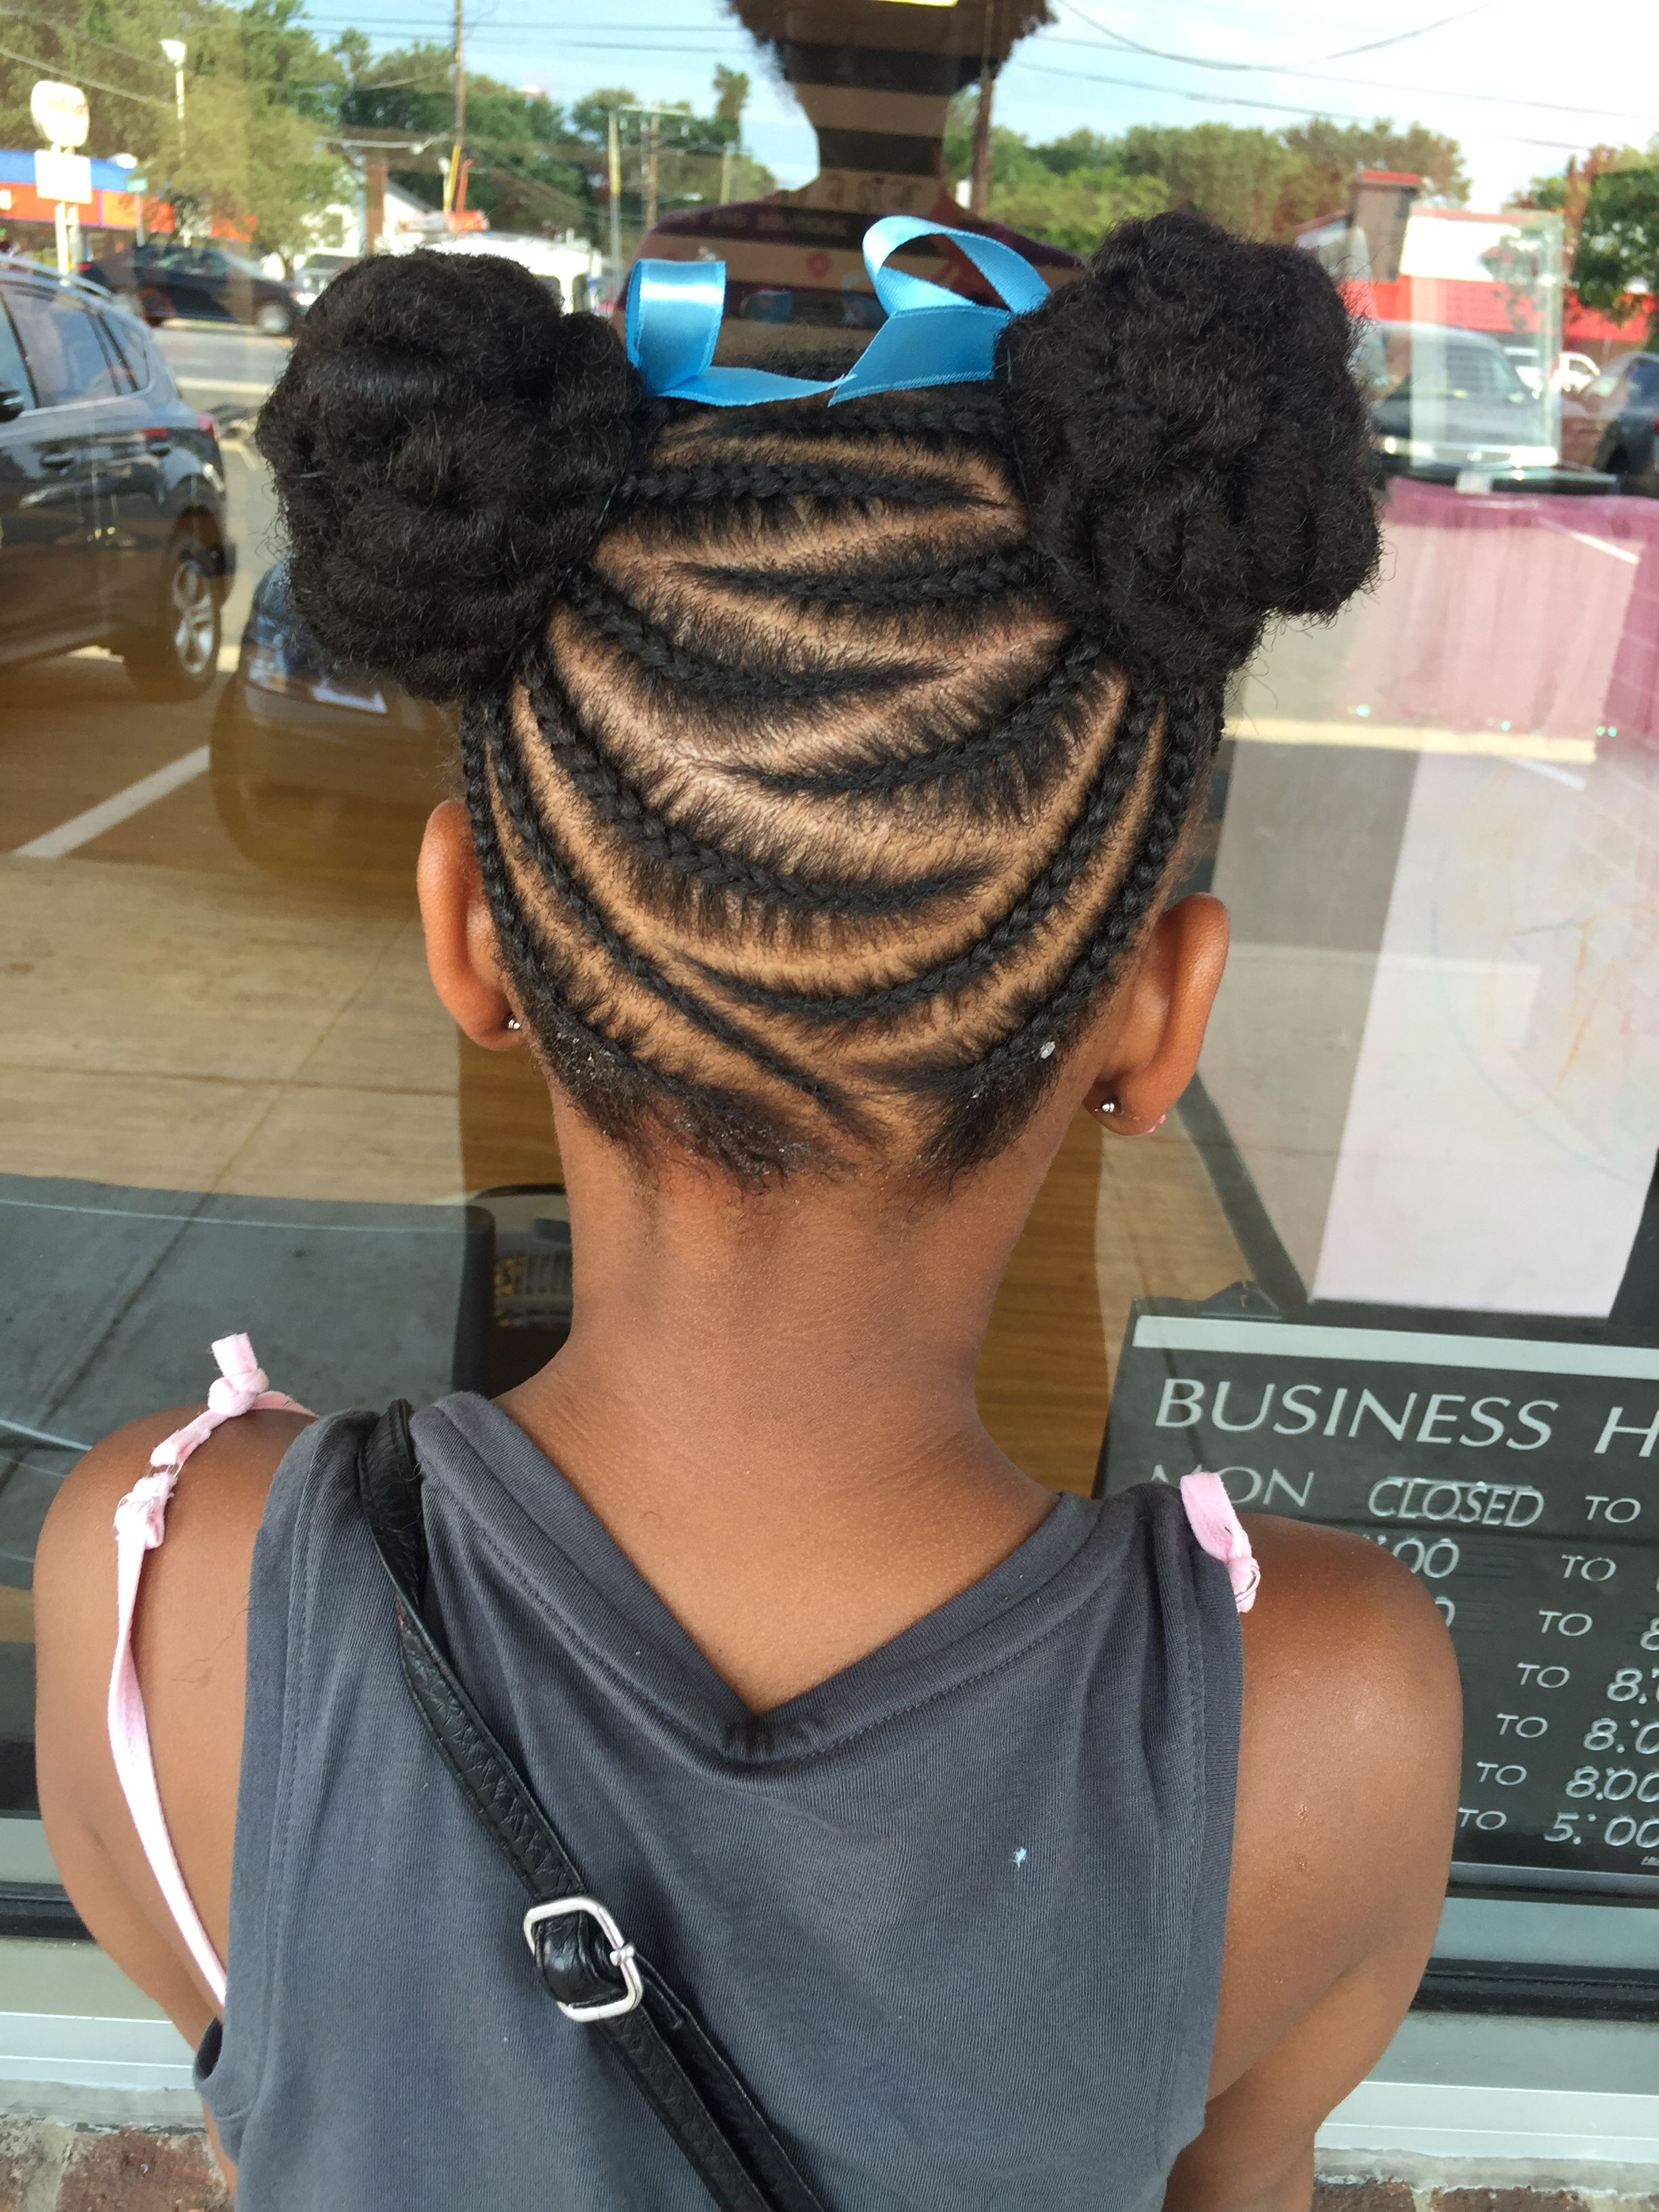 Zig Zag Buns Kids Braided Hairstyles Hair Styles Kids Hairstyles